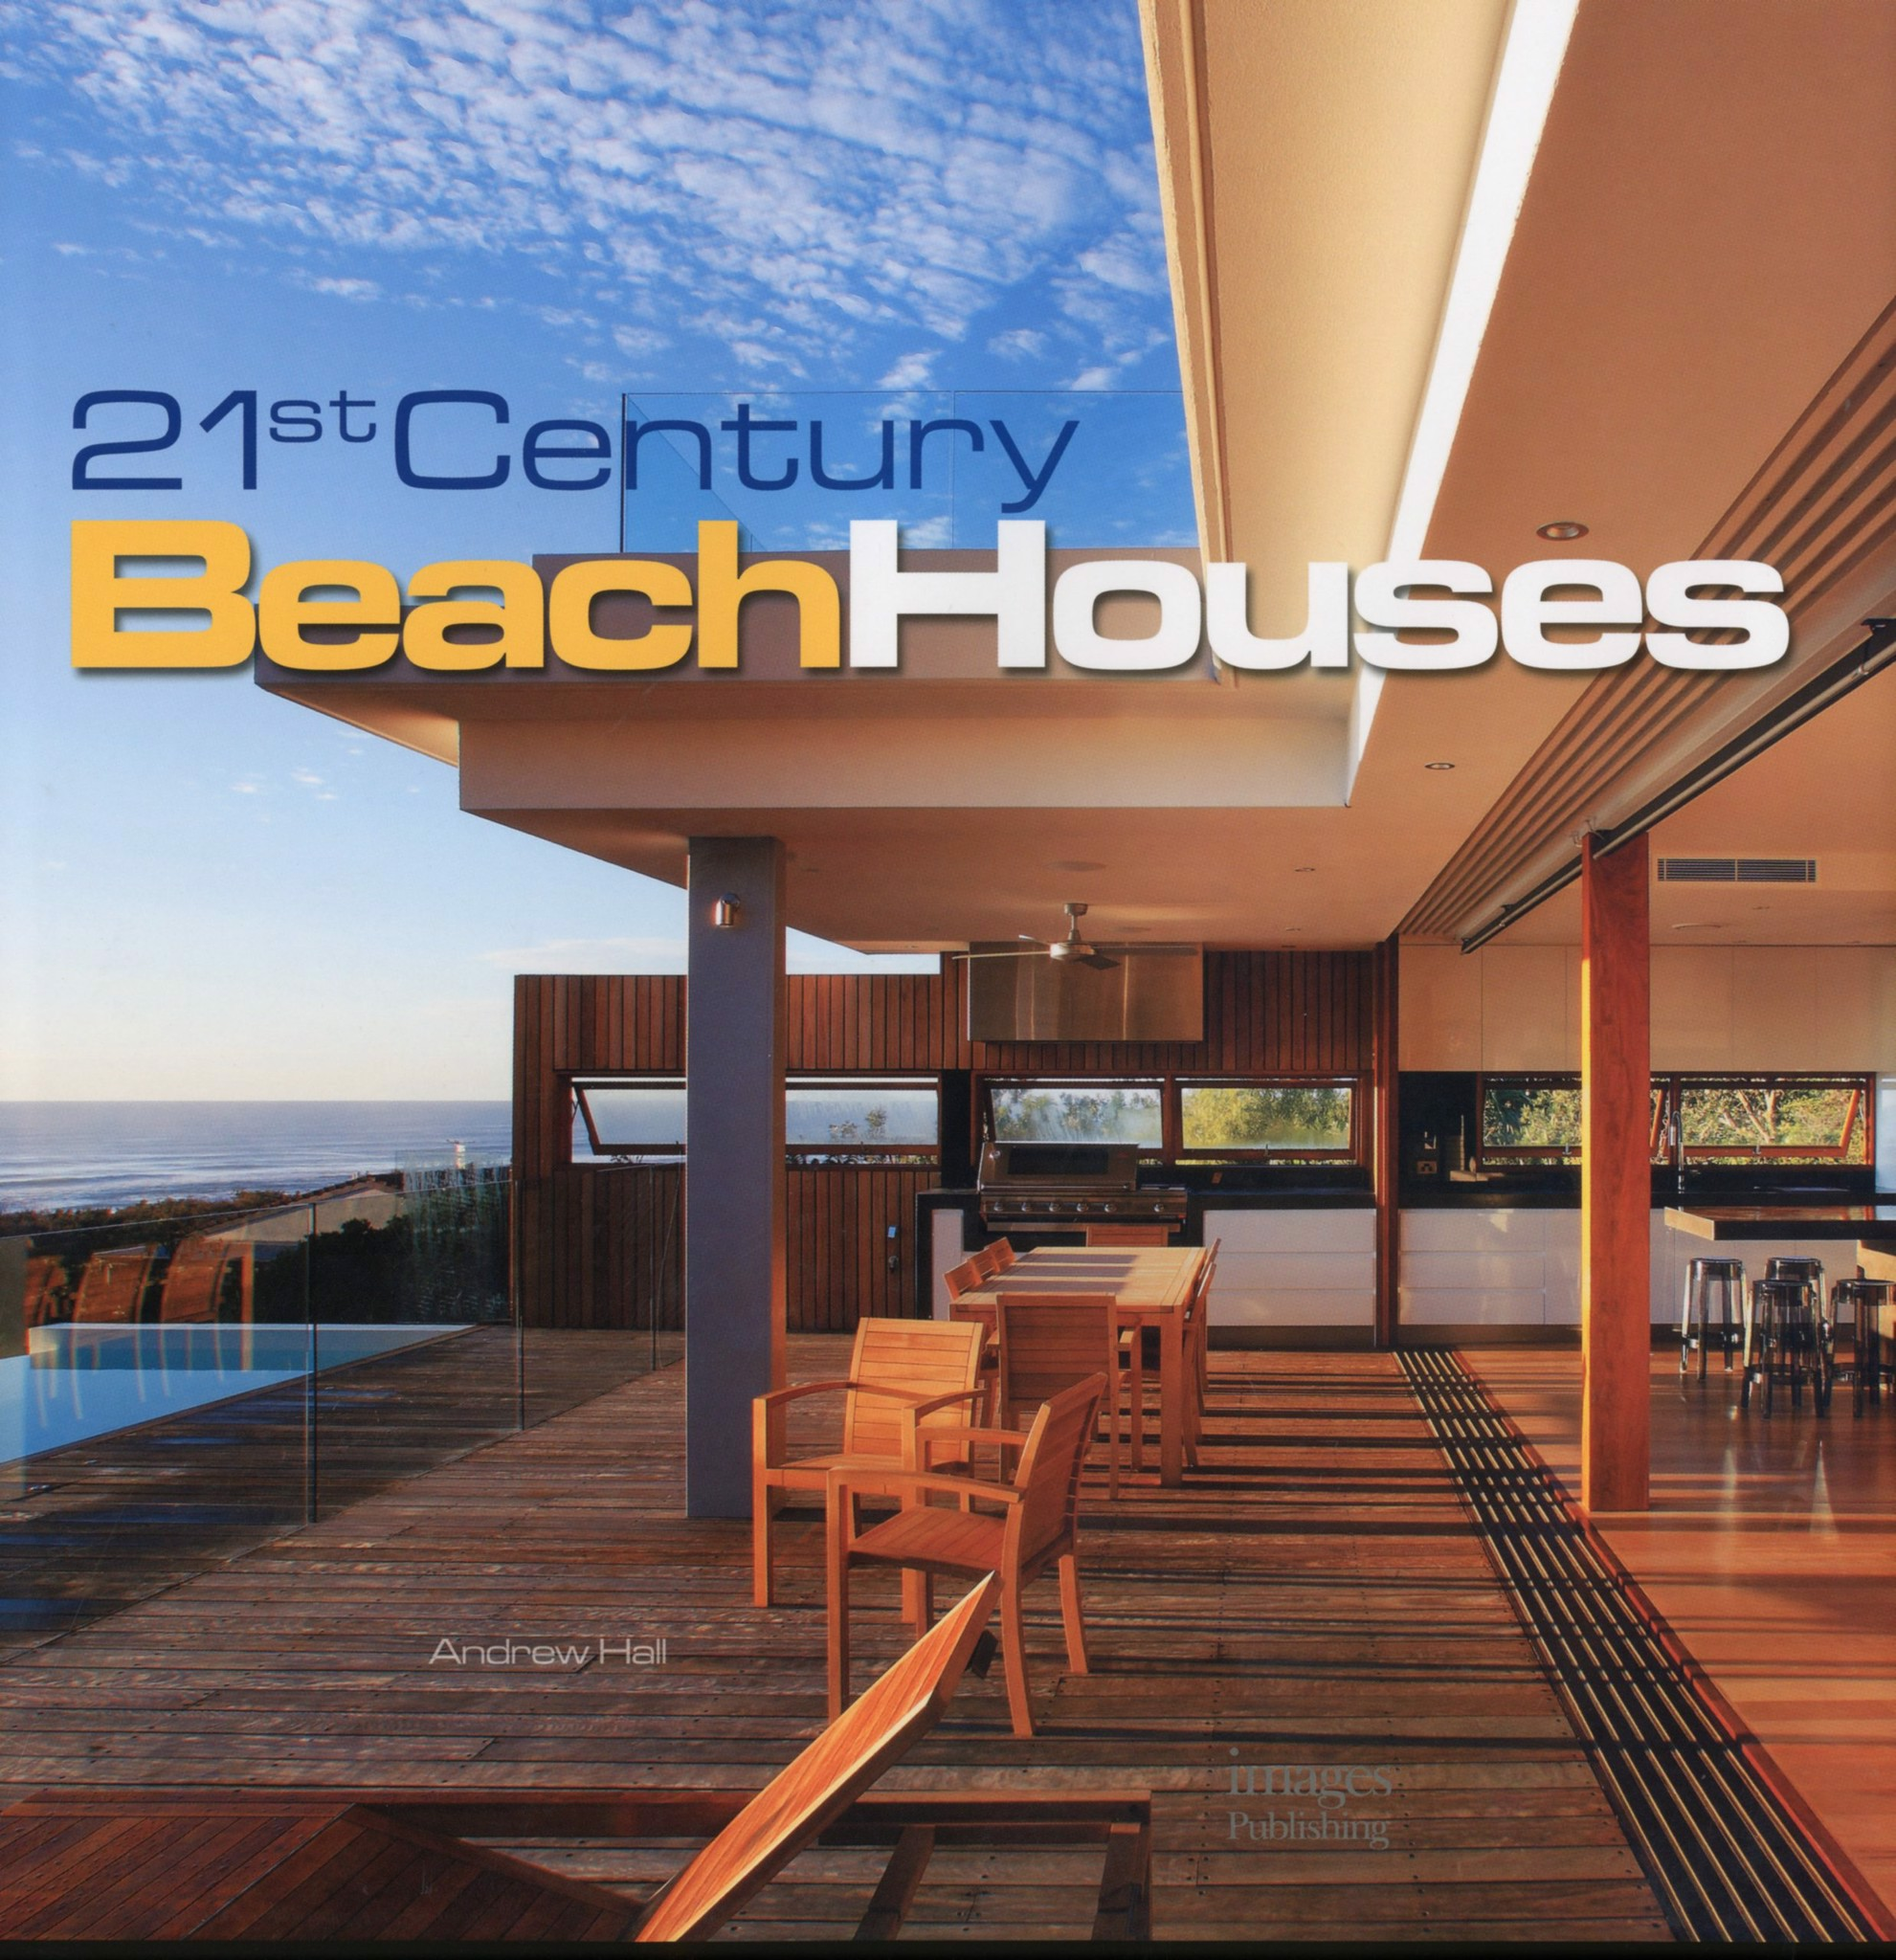 21st Century Beach Houses